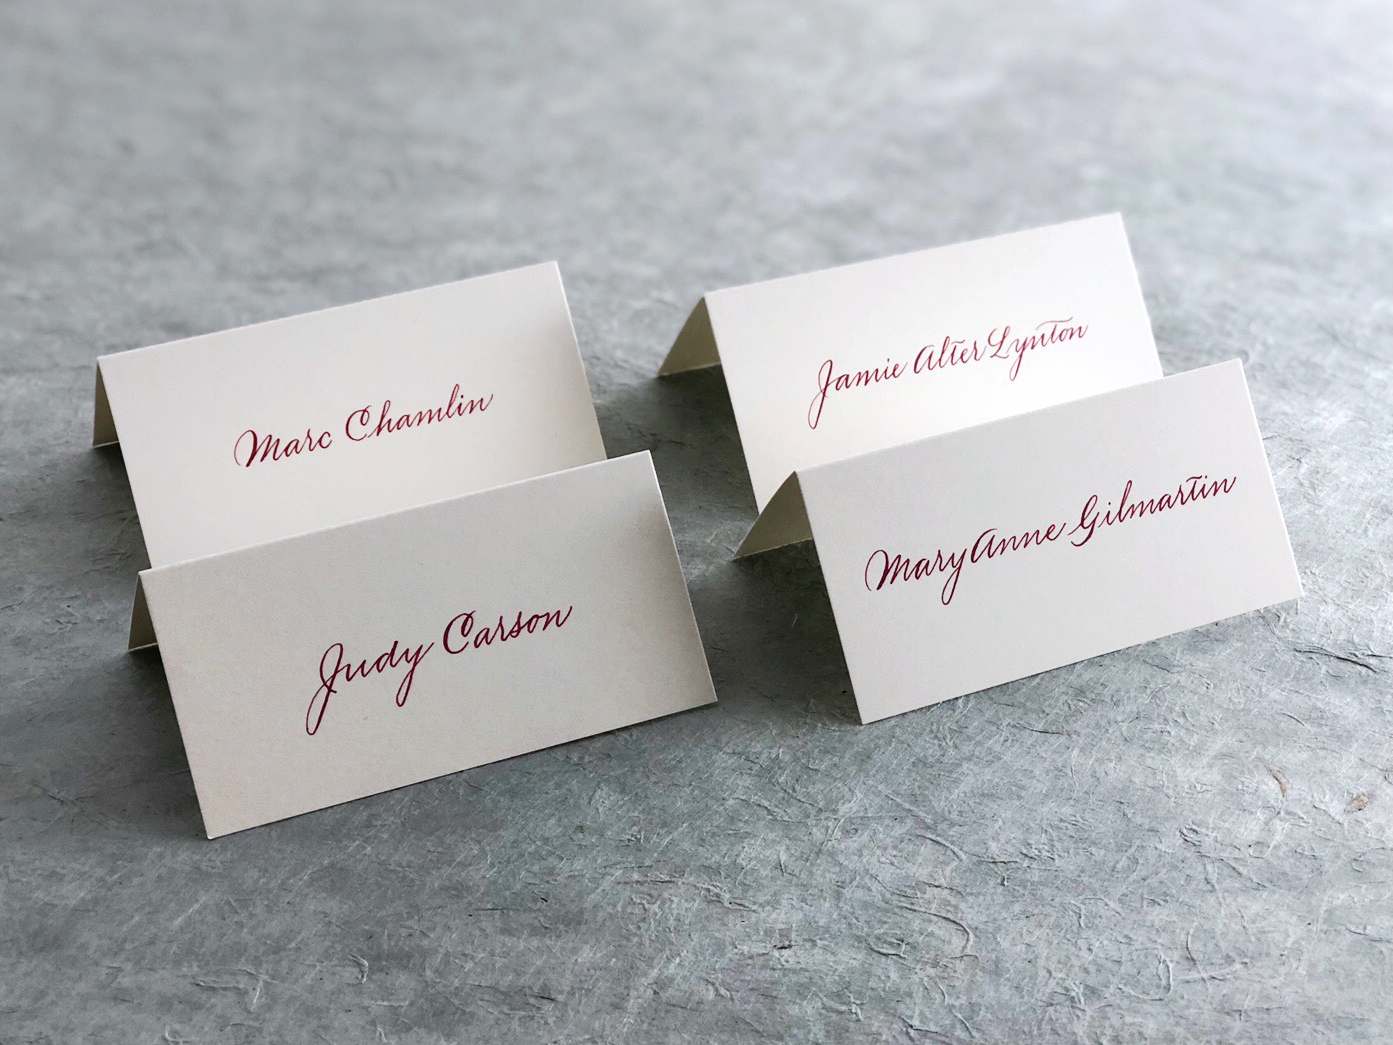 Spencerian calligraphy place cards for NYPR Gala   by www.chavelli.com